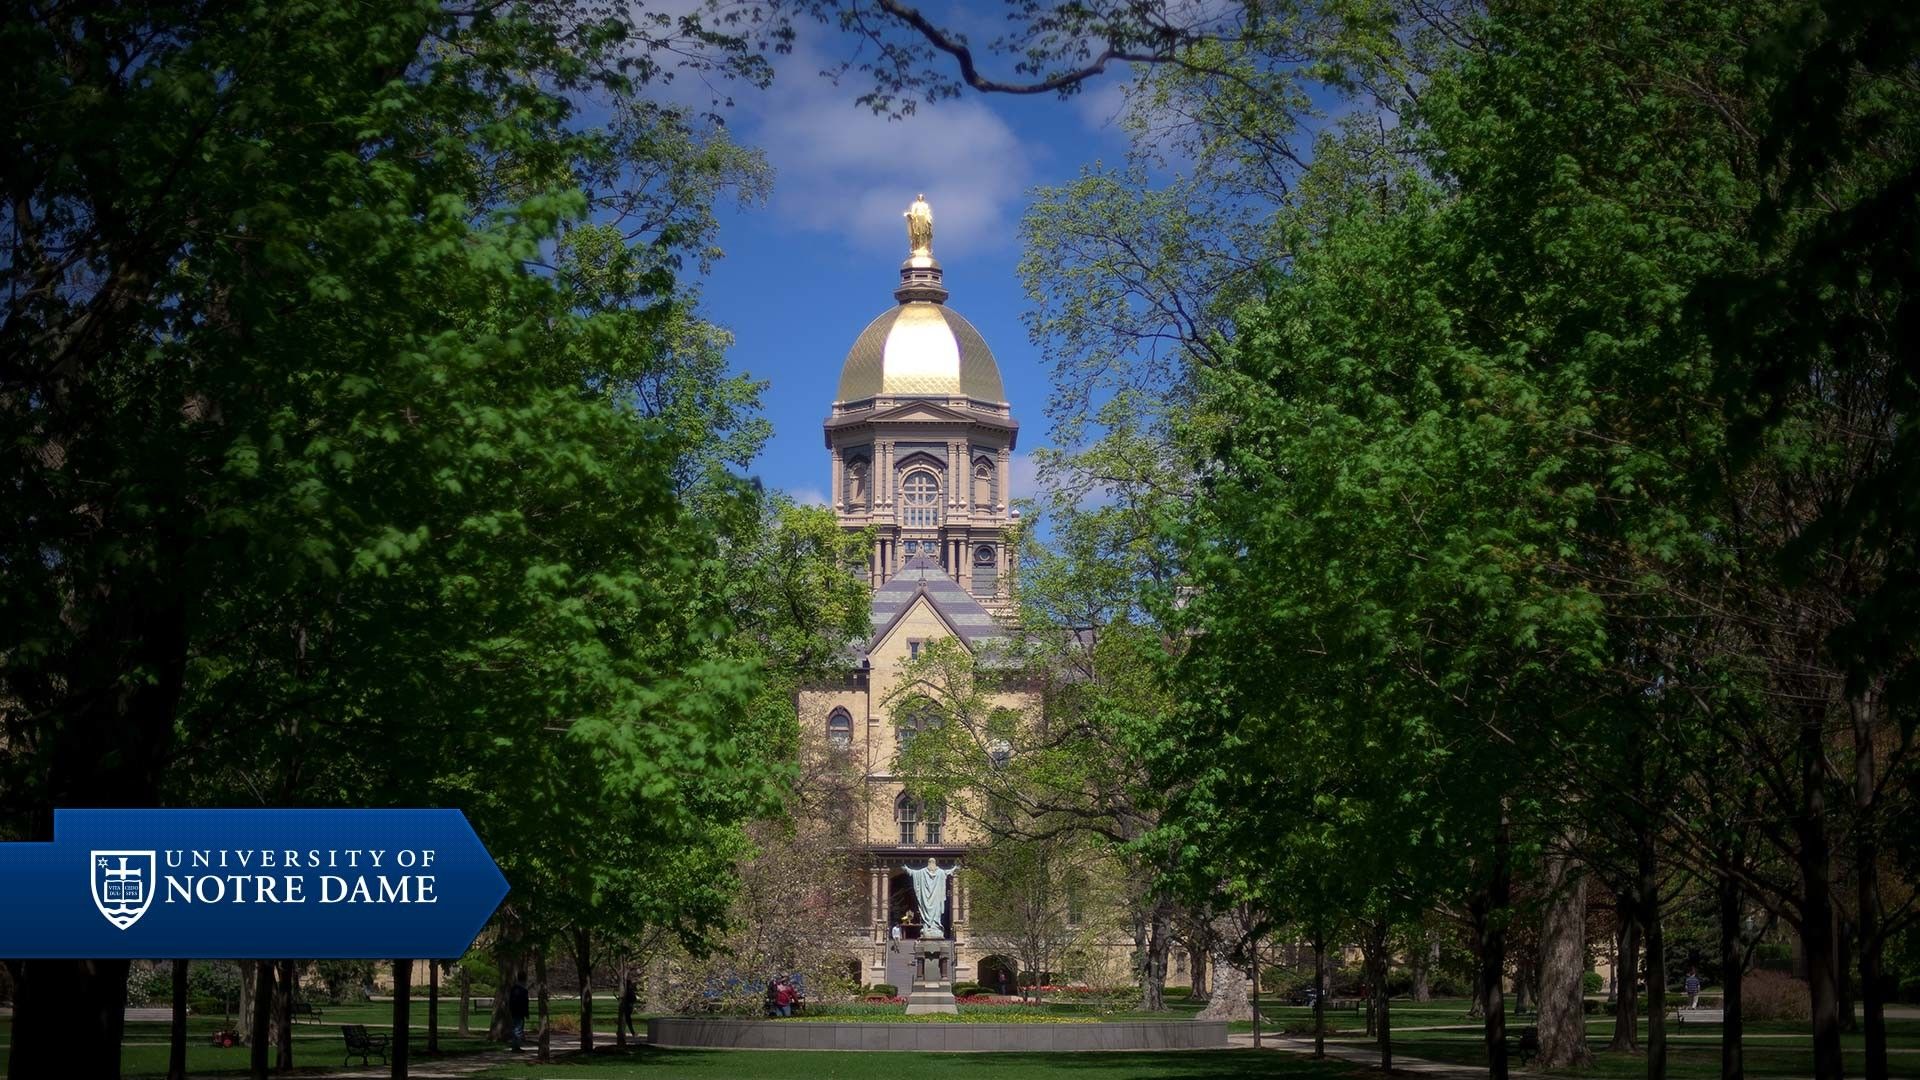 Sights and Sounds // Visitors // University of Notre Dame